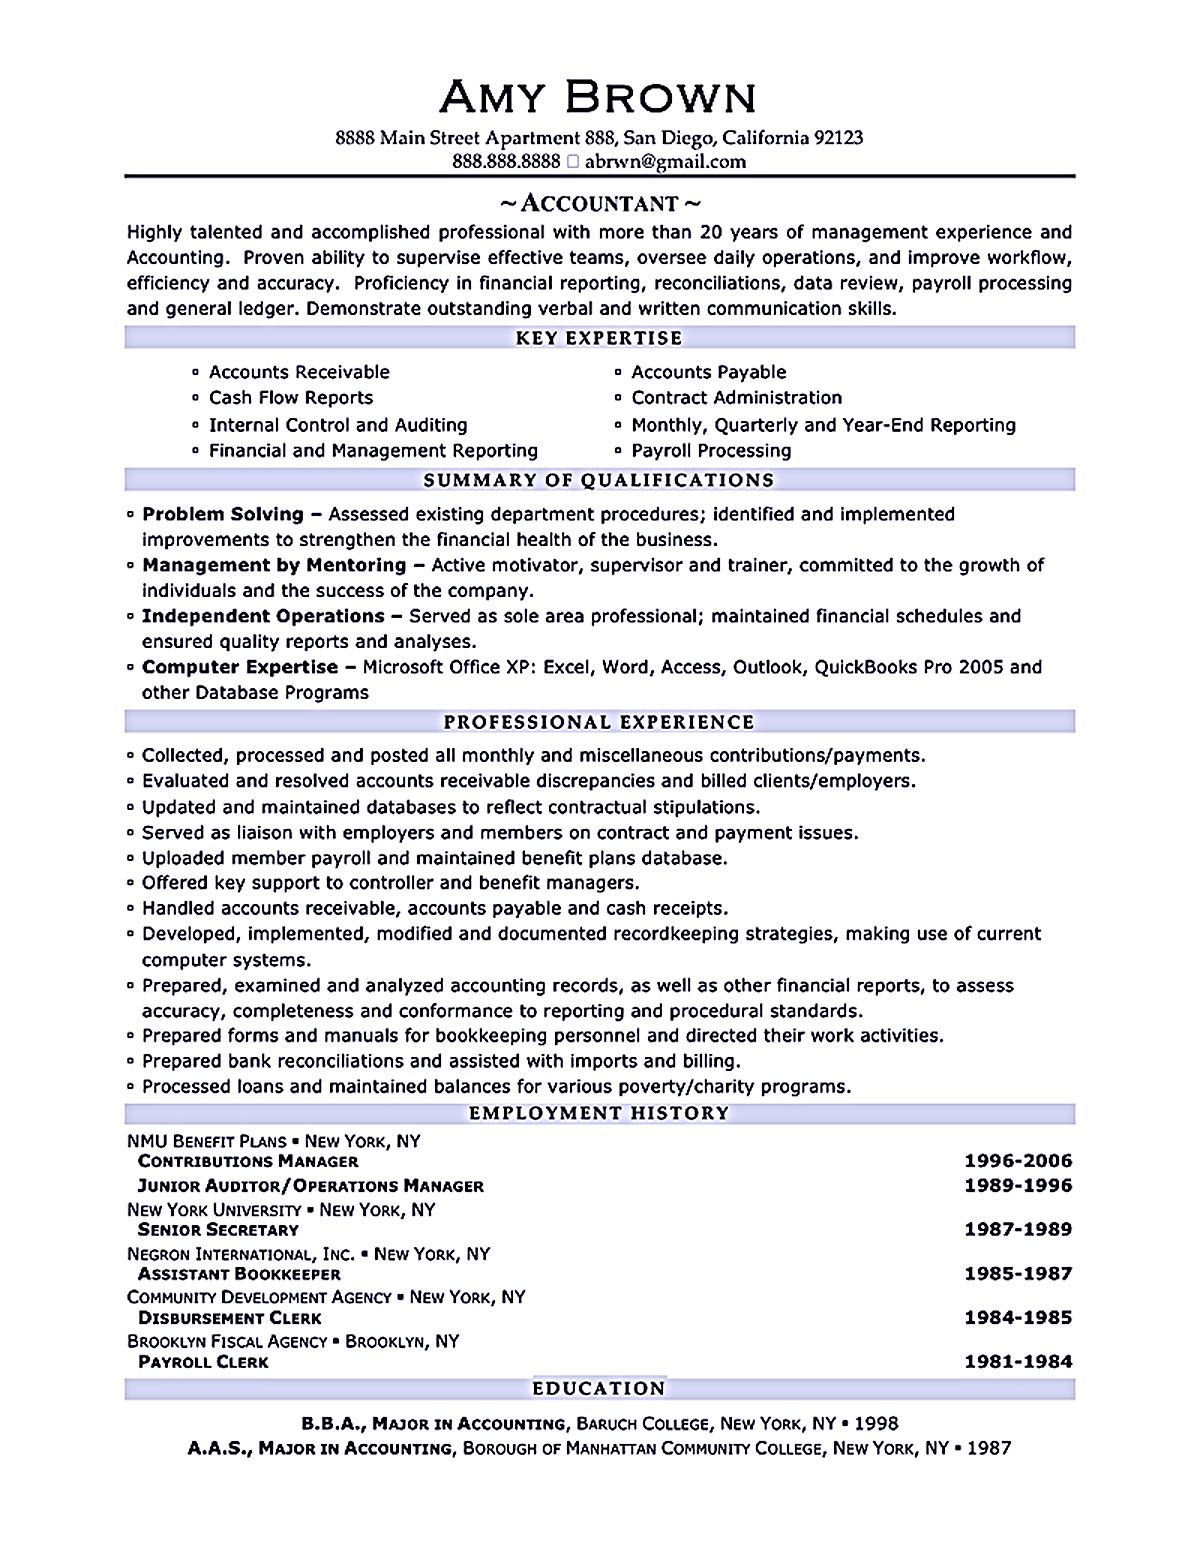 Accountant Resume Template Here Helps You In Boosting Your Career